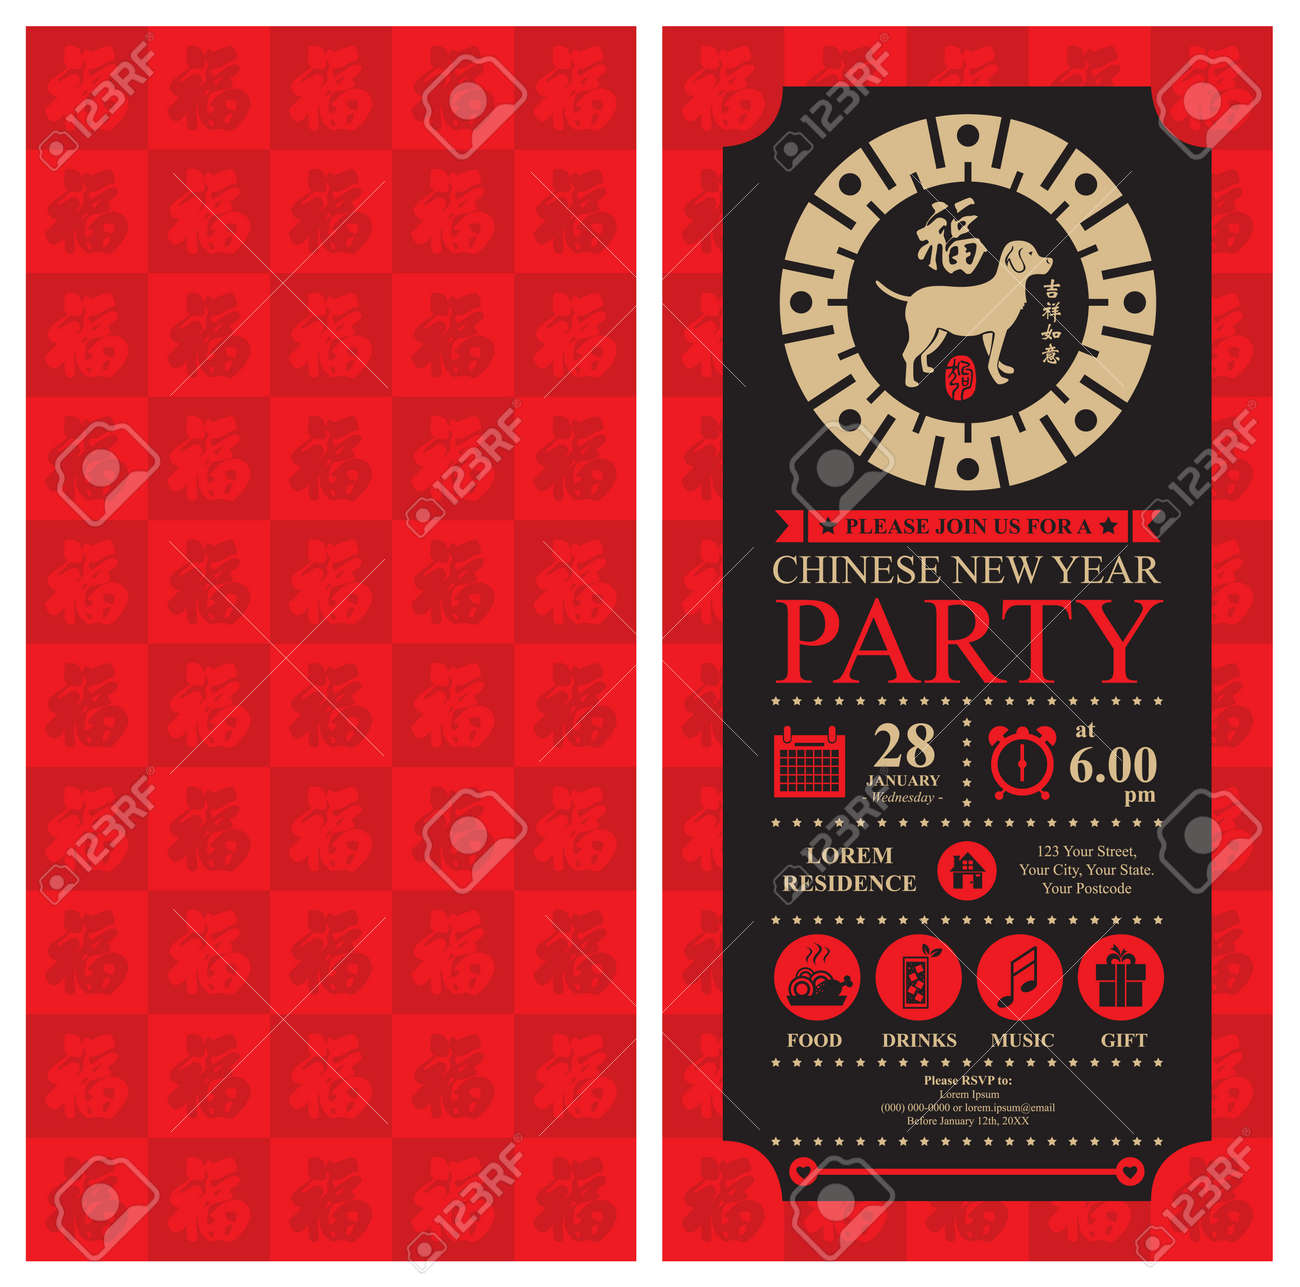 chinese new year invitation party celebrate year of dog stock vector 89758927